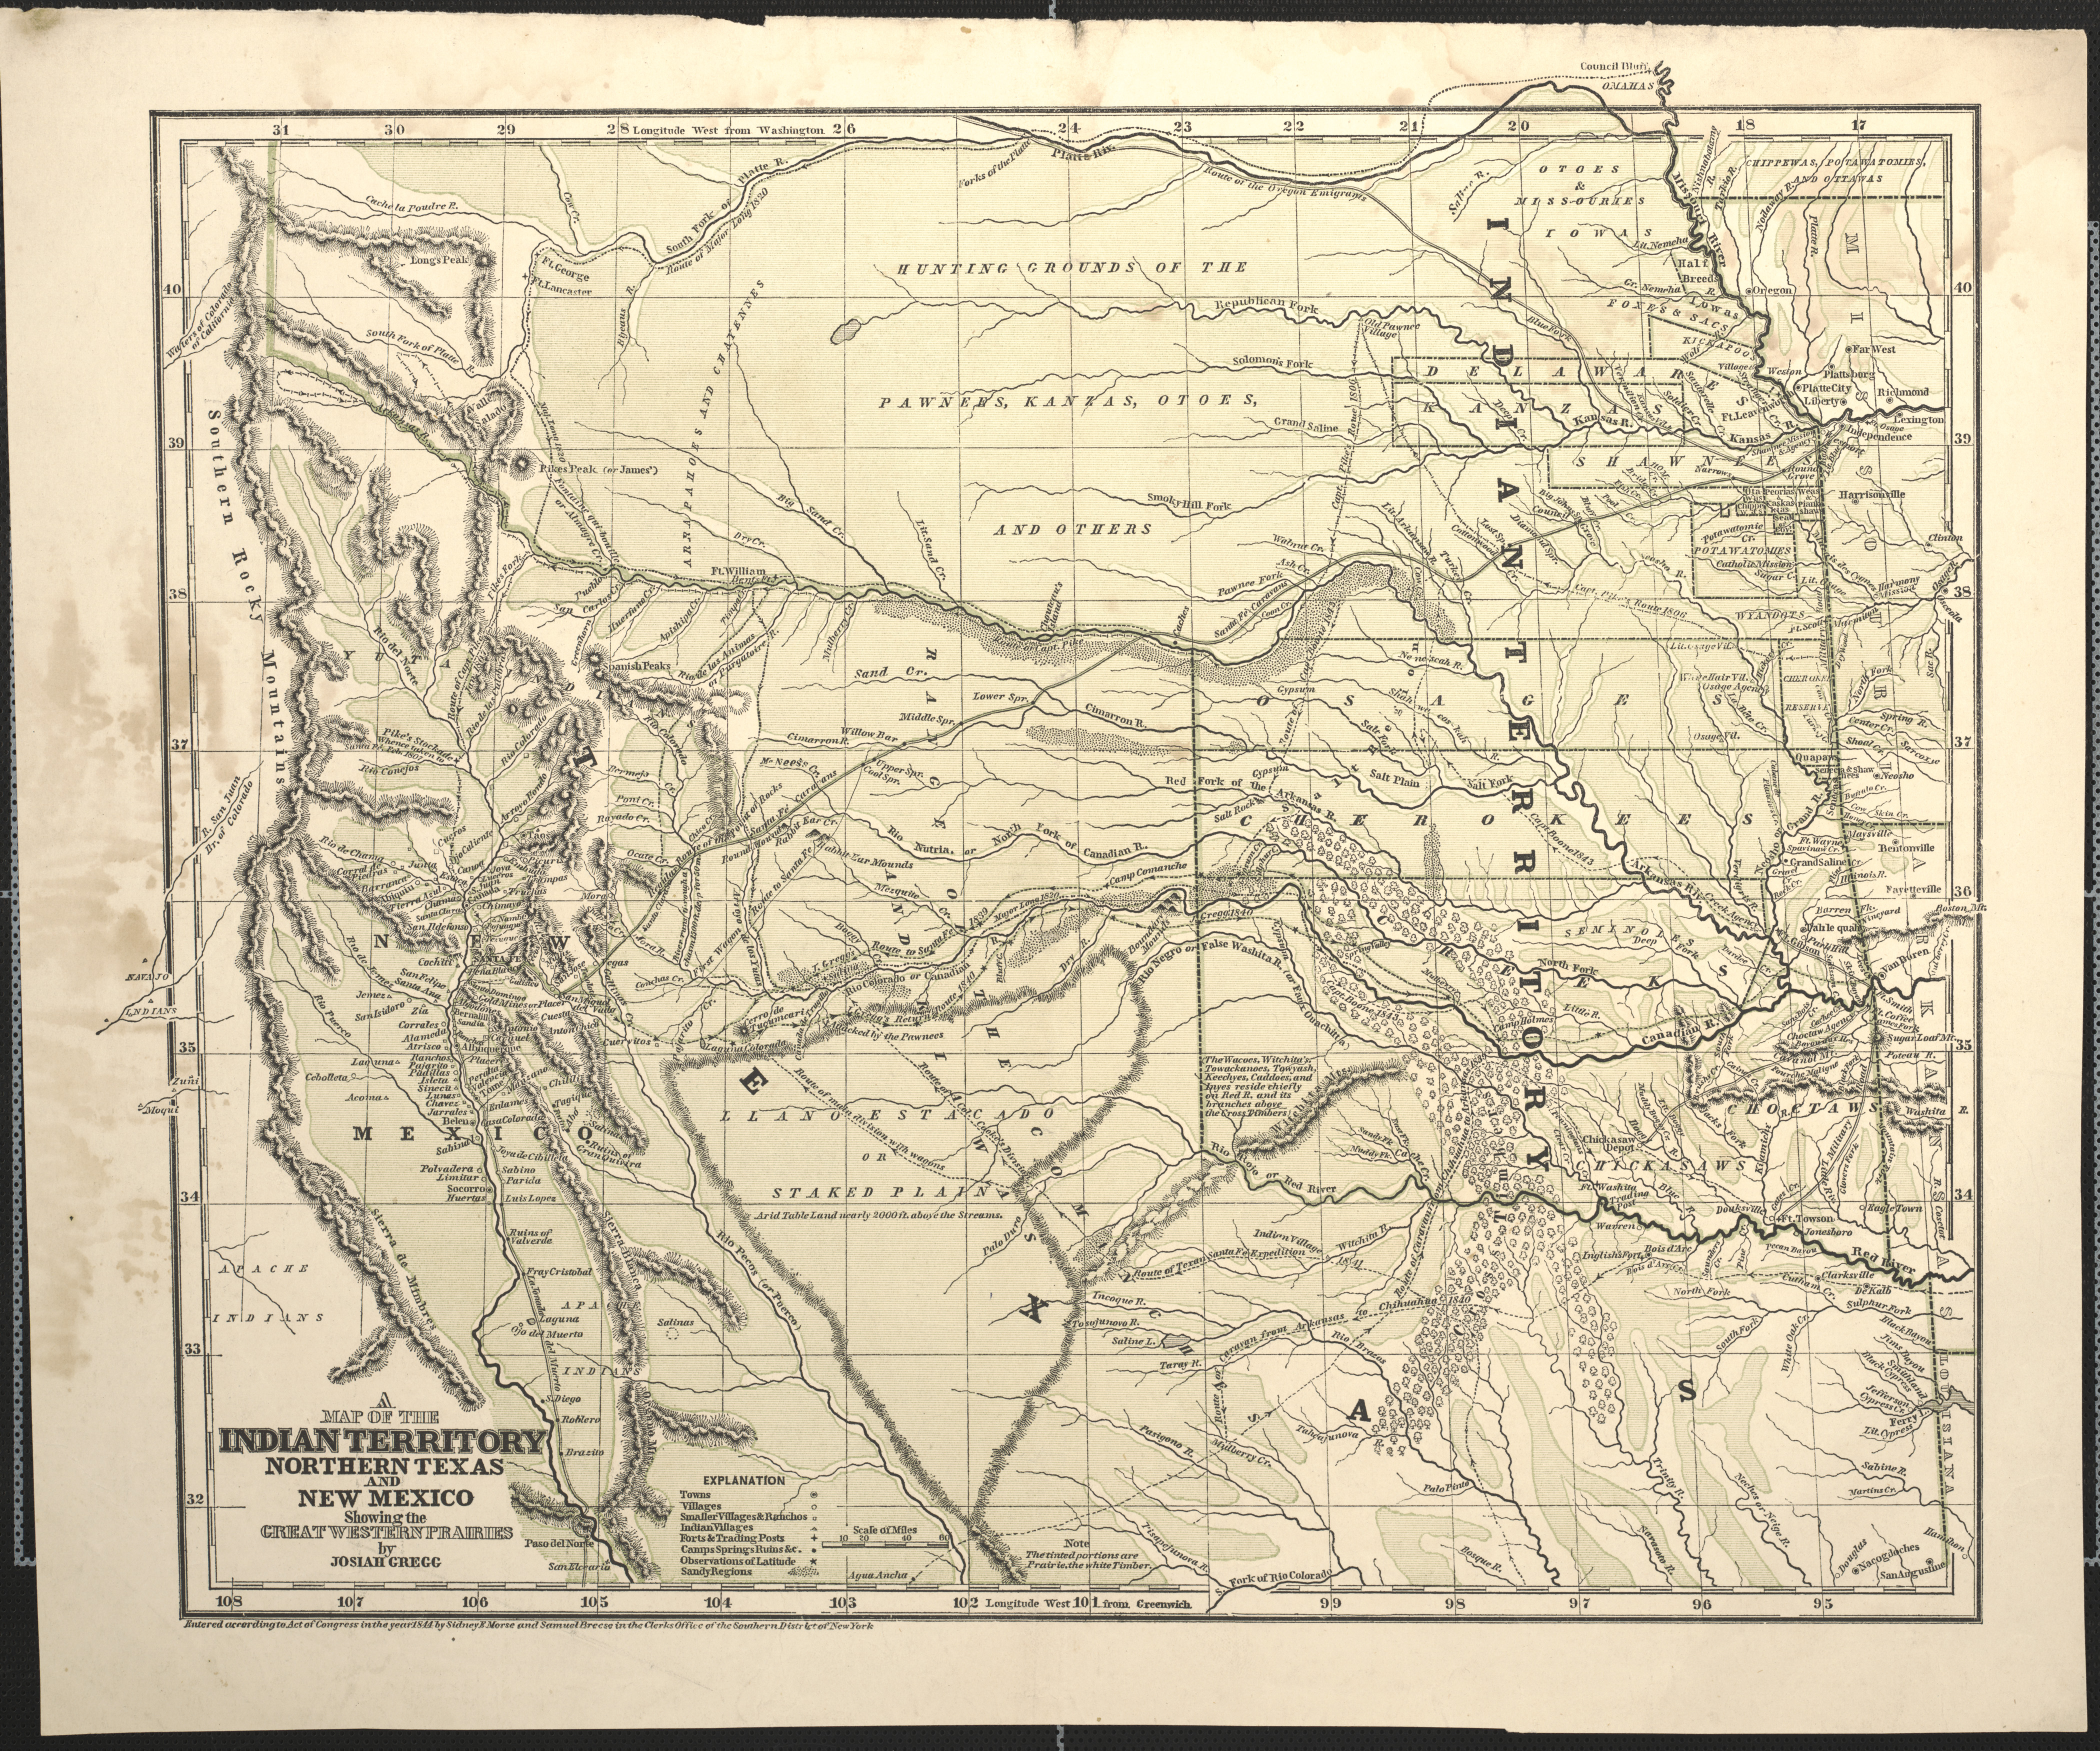 Maps A Map Of The Indian Territory Northern Texas And New Mexico - Us-indian-territory-map